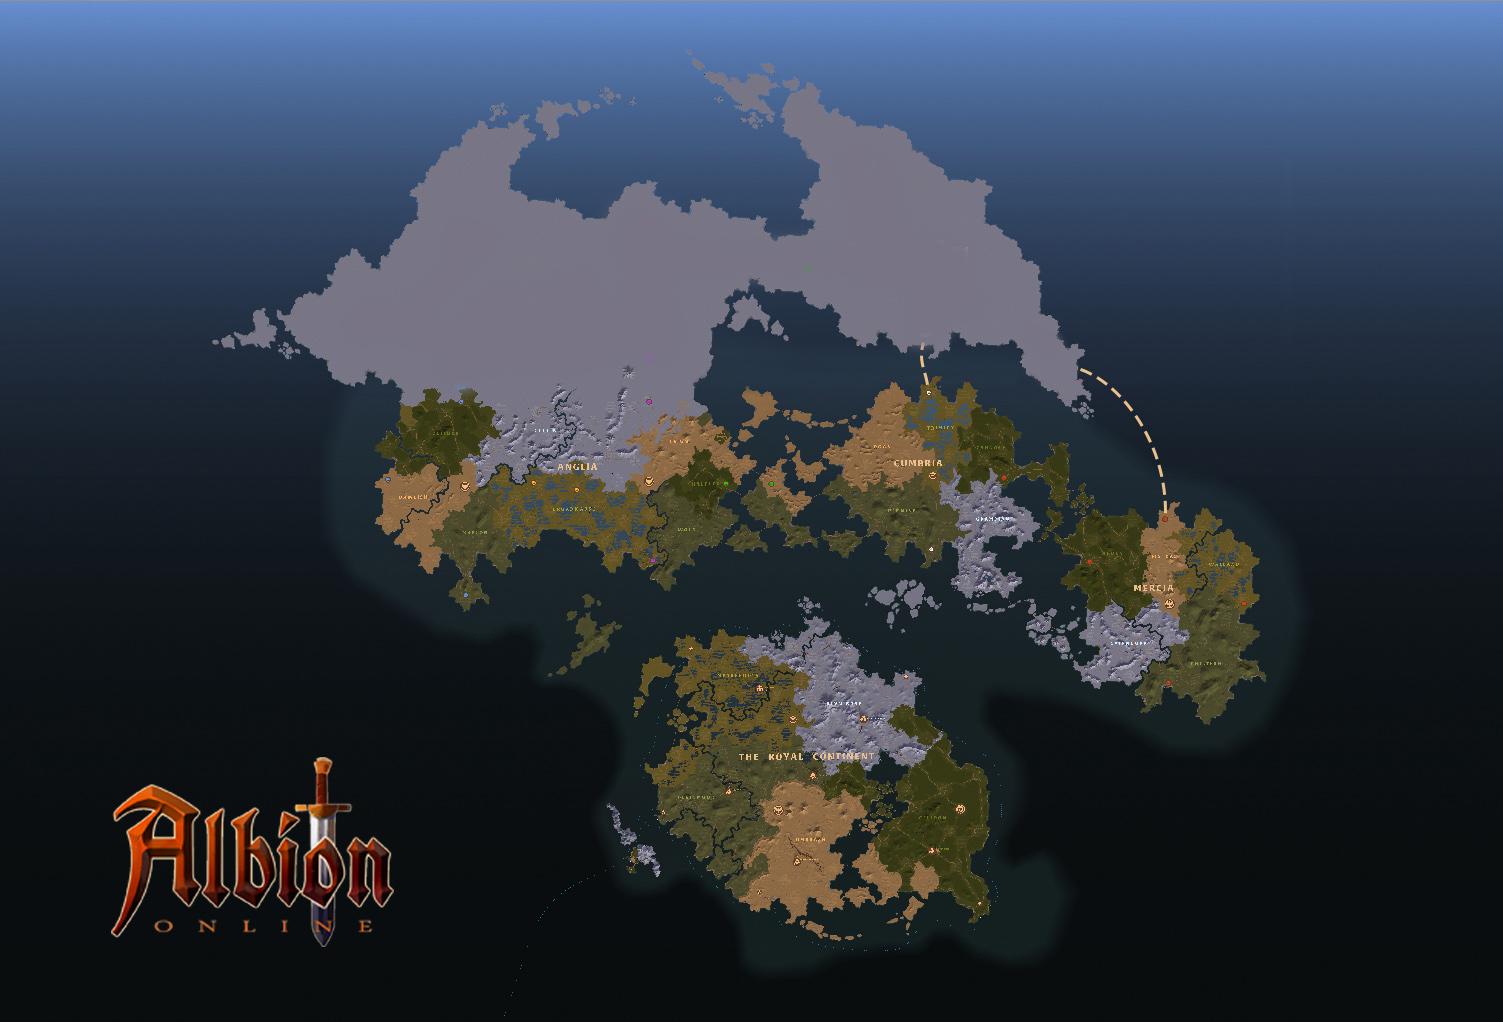 Albion Online, The Royal Continent, and The Outlands map